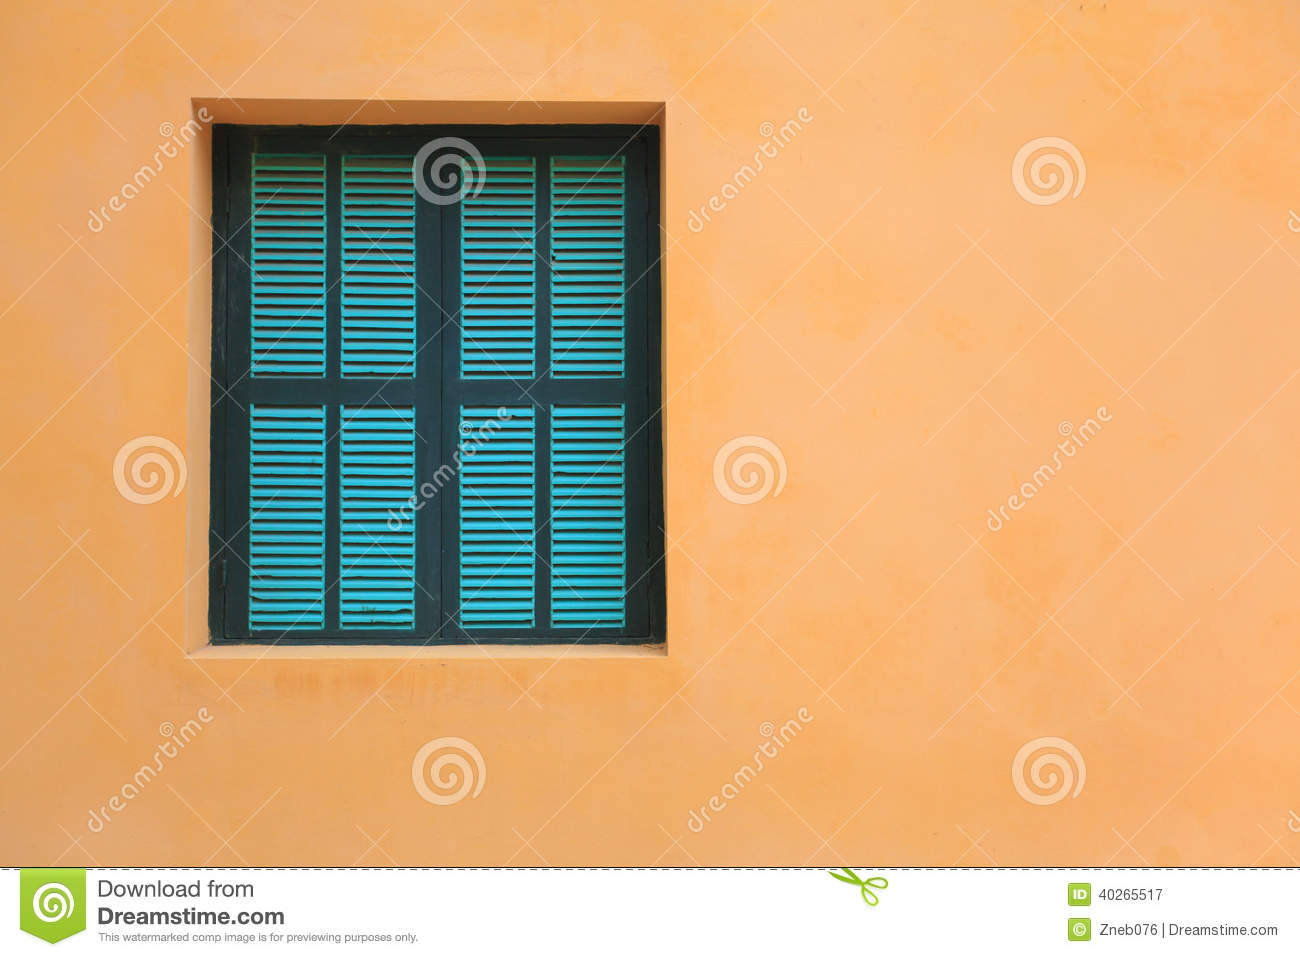 gr ne fenster auf orange wand stock fotos melden sie sich kostenlos an. Black Bedroom Furniture Sets. Home Design Ideas